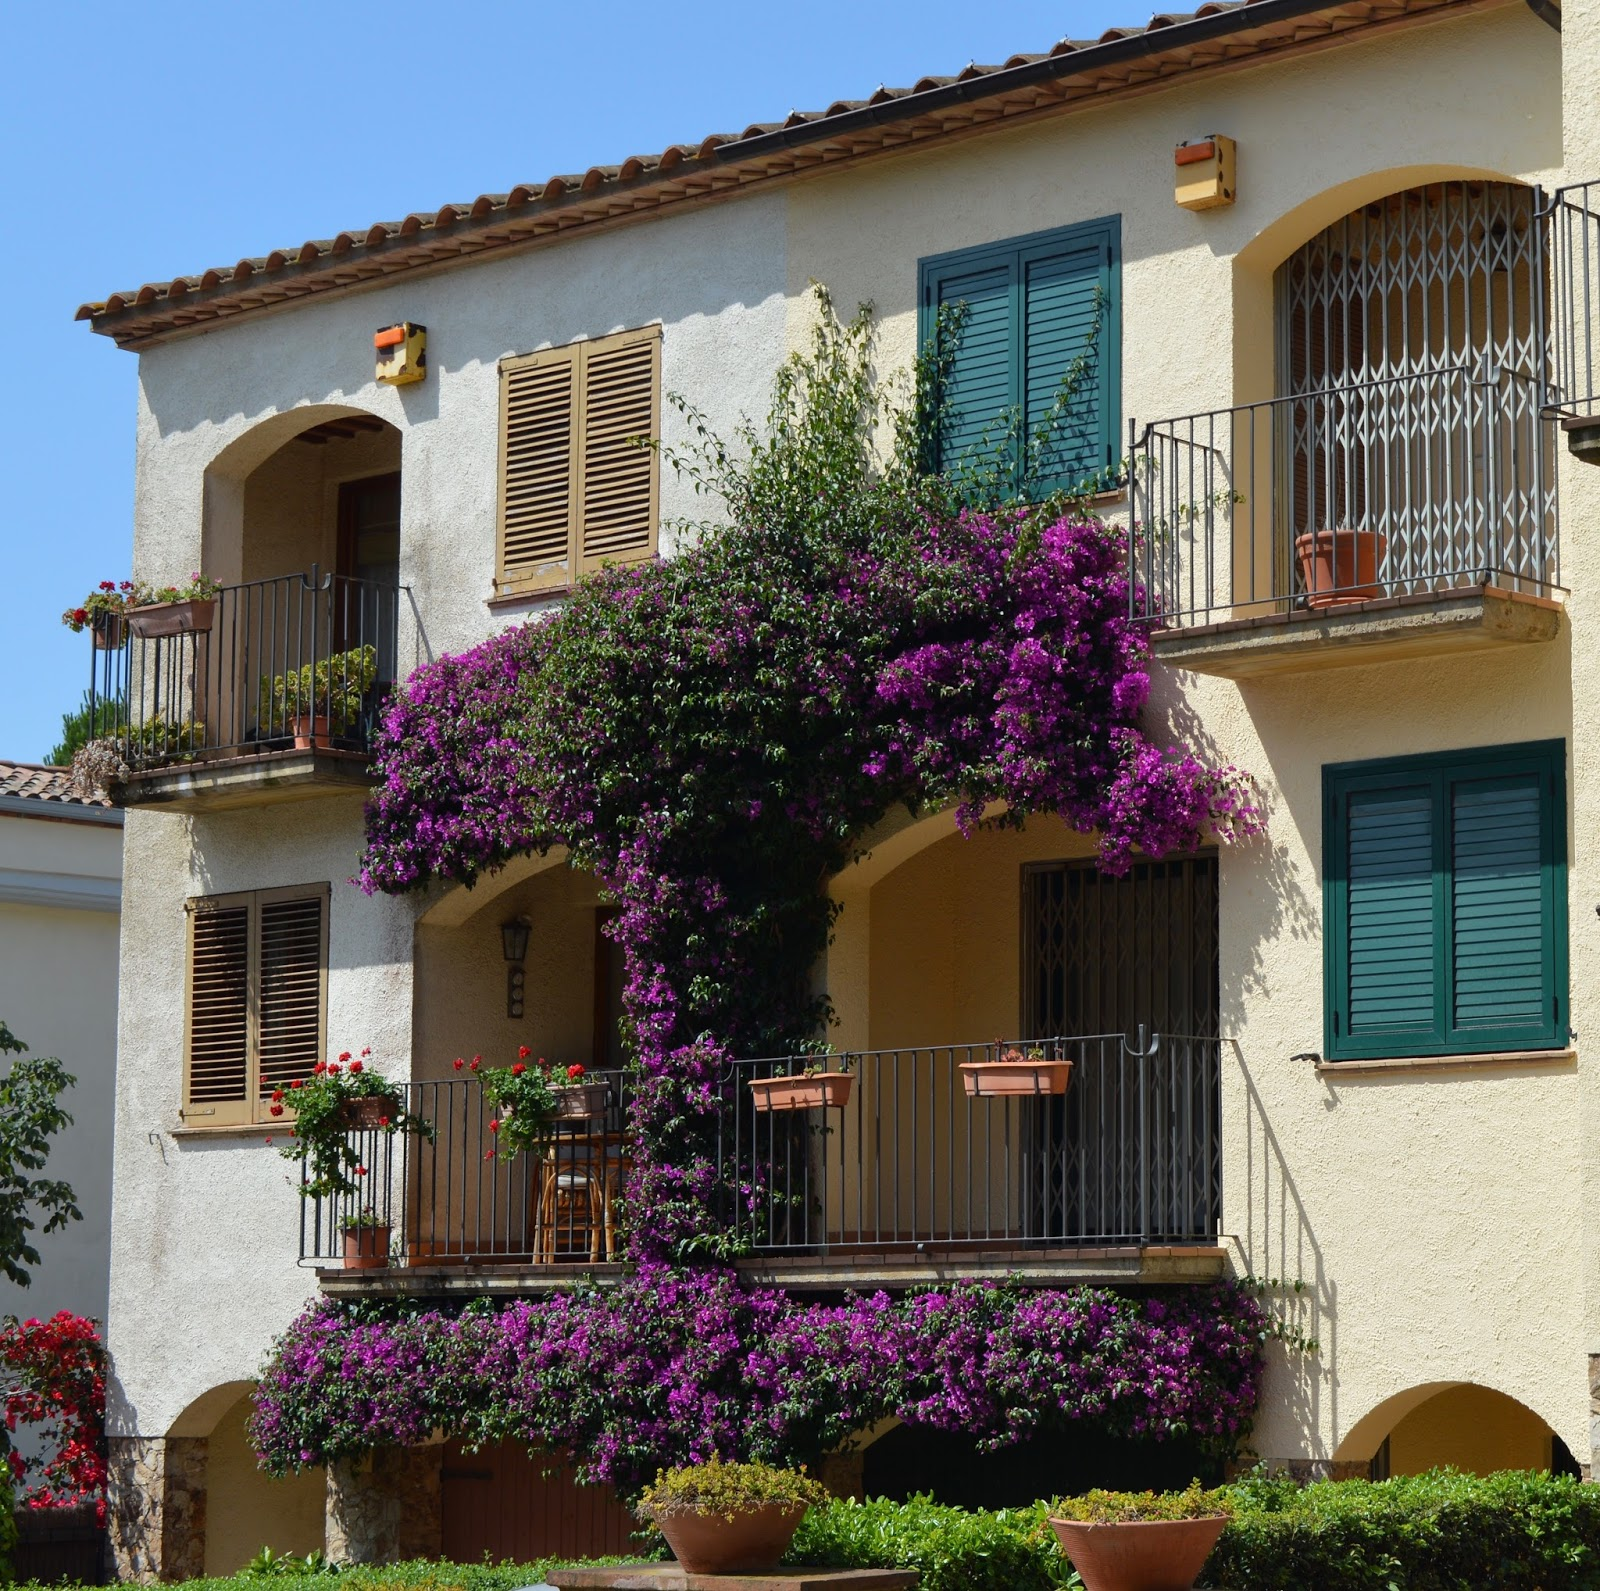 Is it Time to Emigrate?  - Moving to Spain